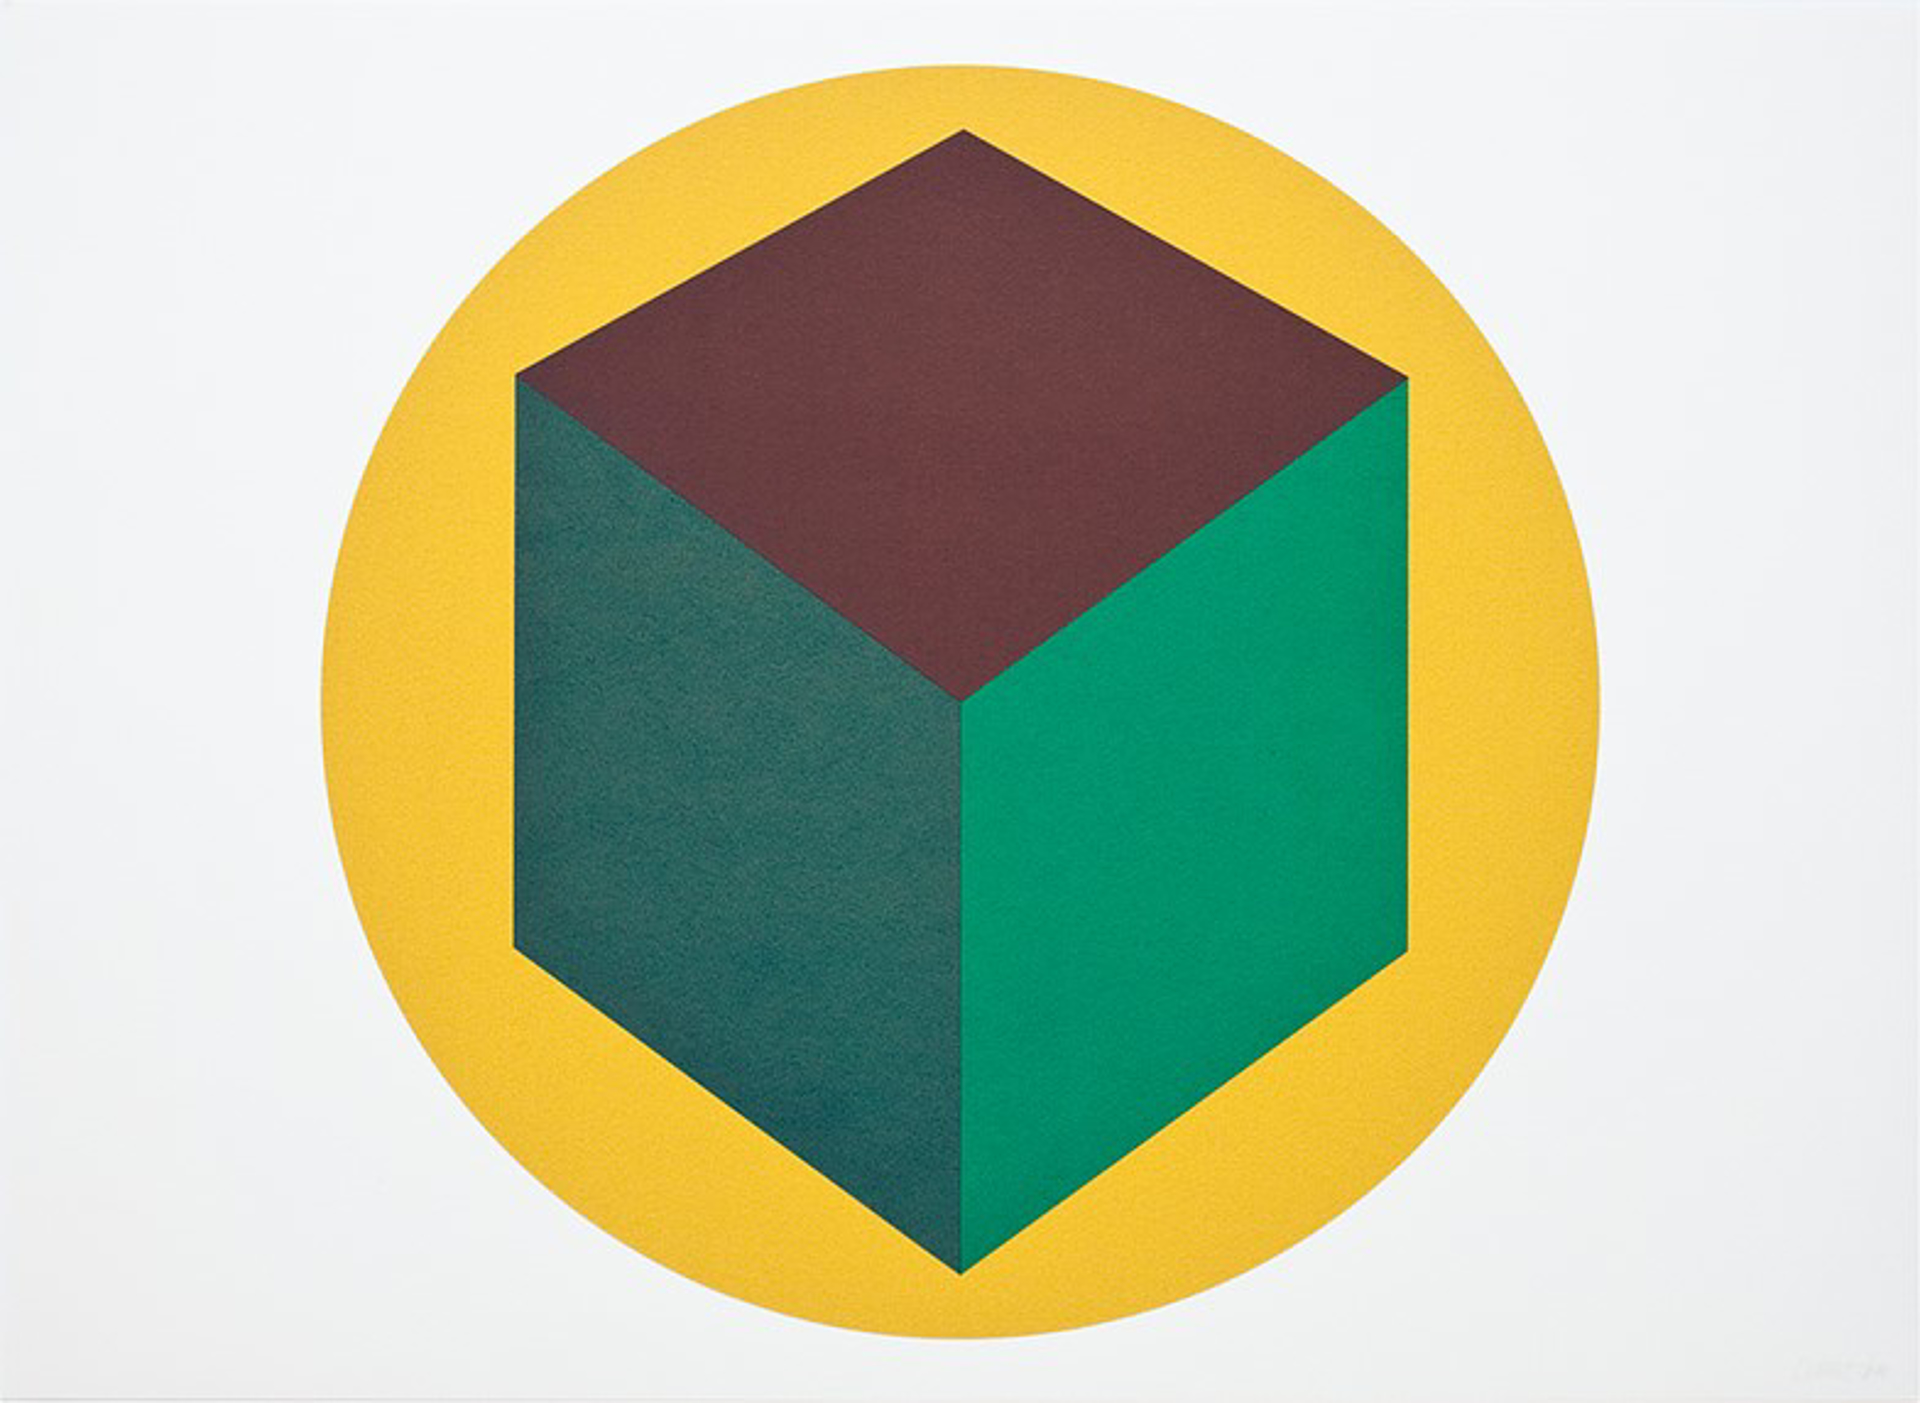 Centered Cube within a Yellow Circle by Sol LeWitt